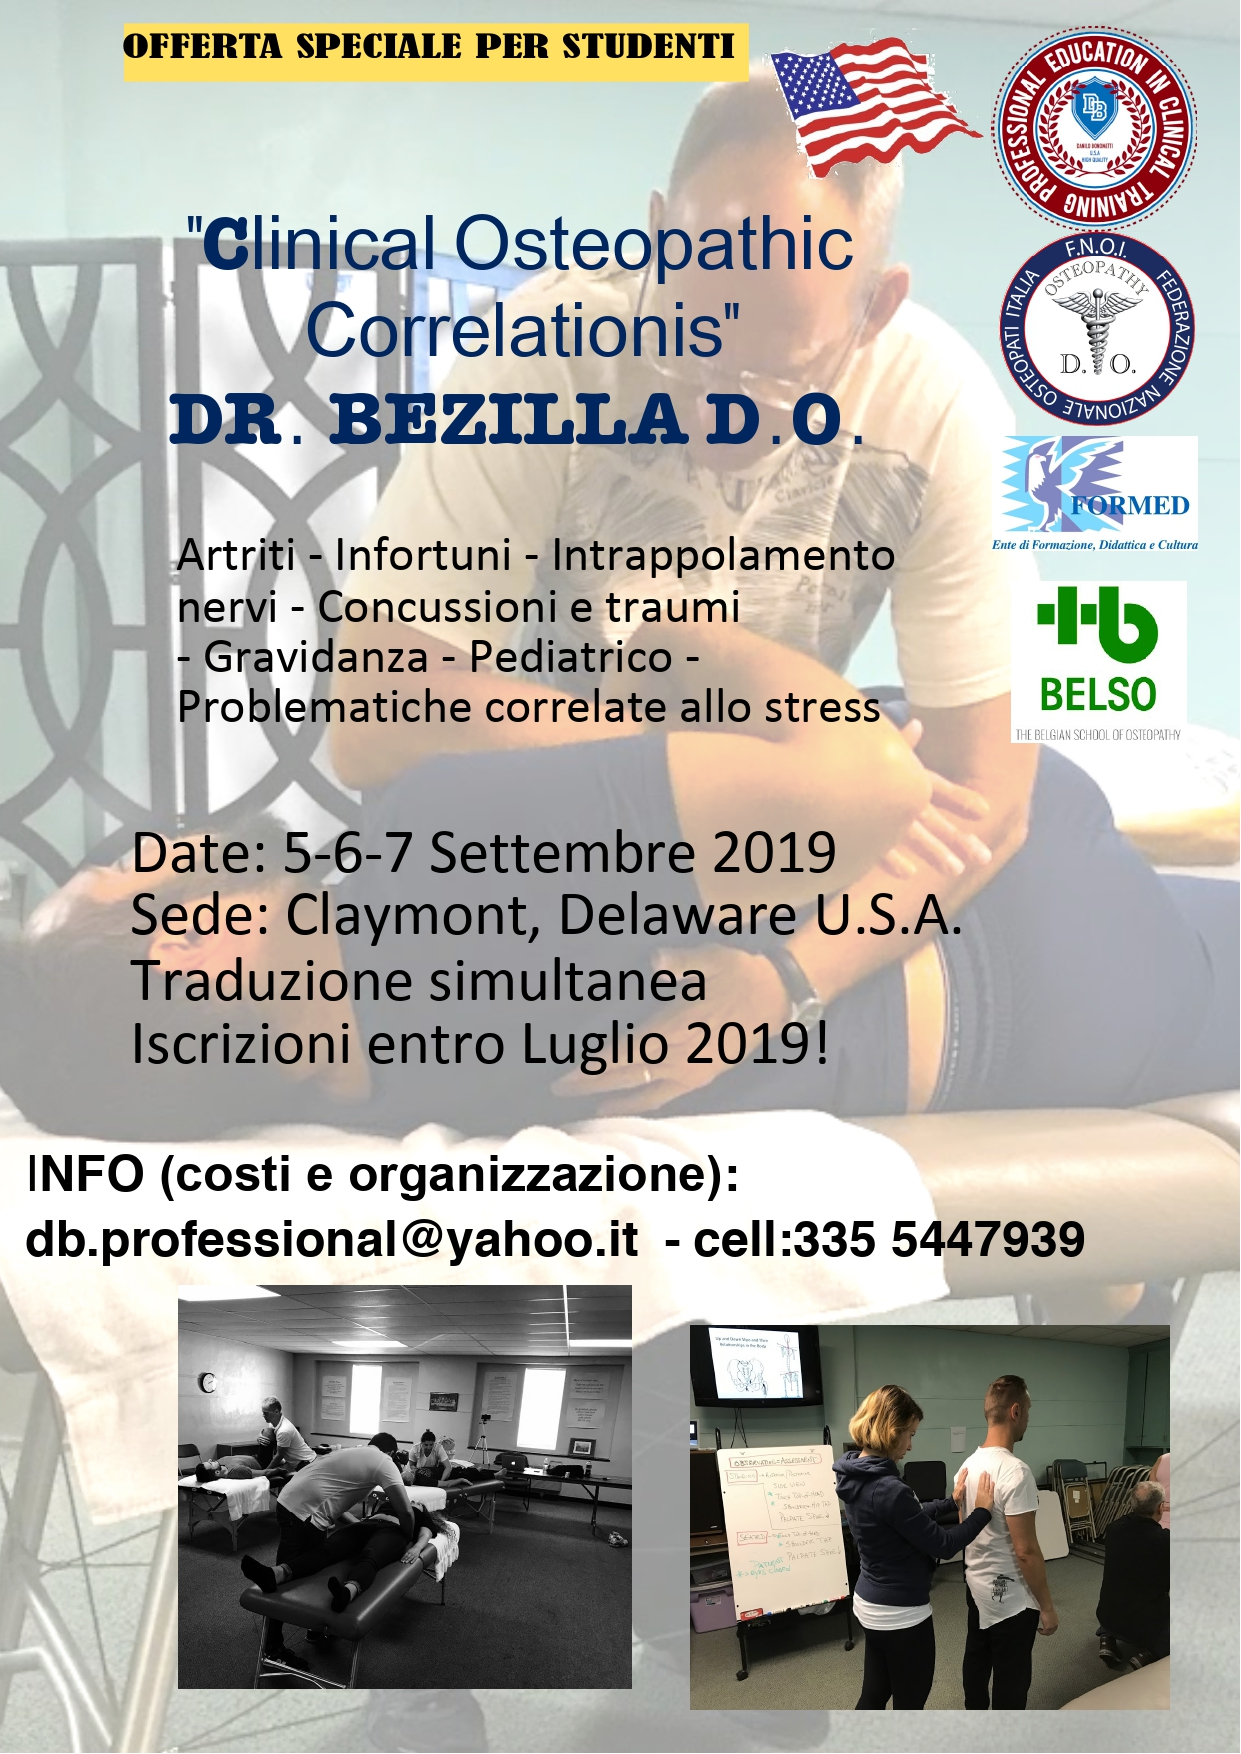 Clinical Osteopathic Correlationis | FORMED – Ente di Formazione